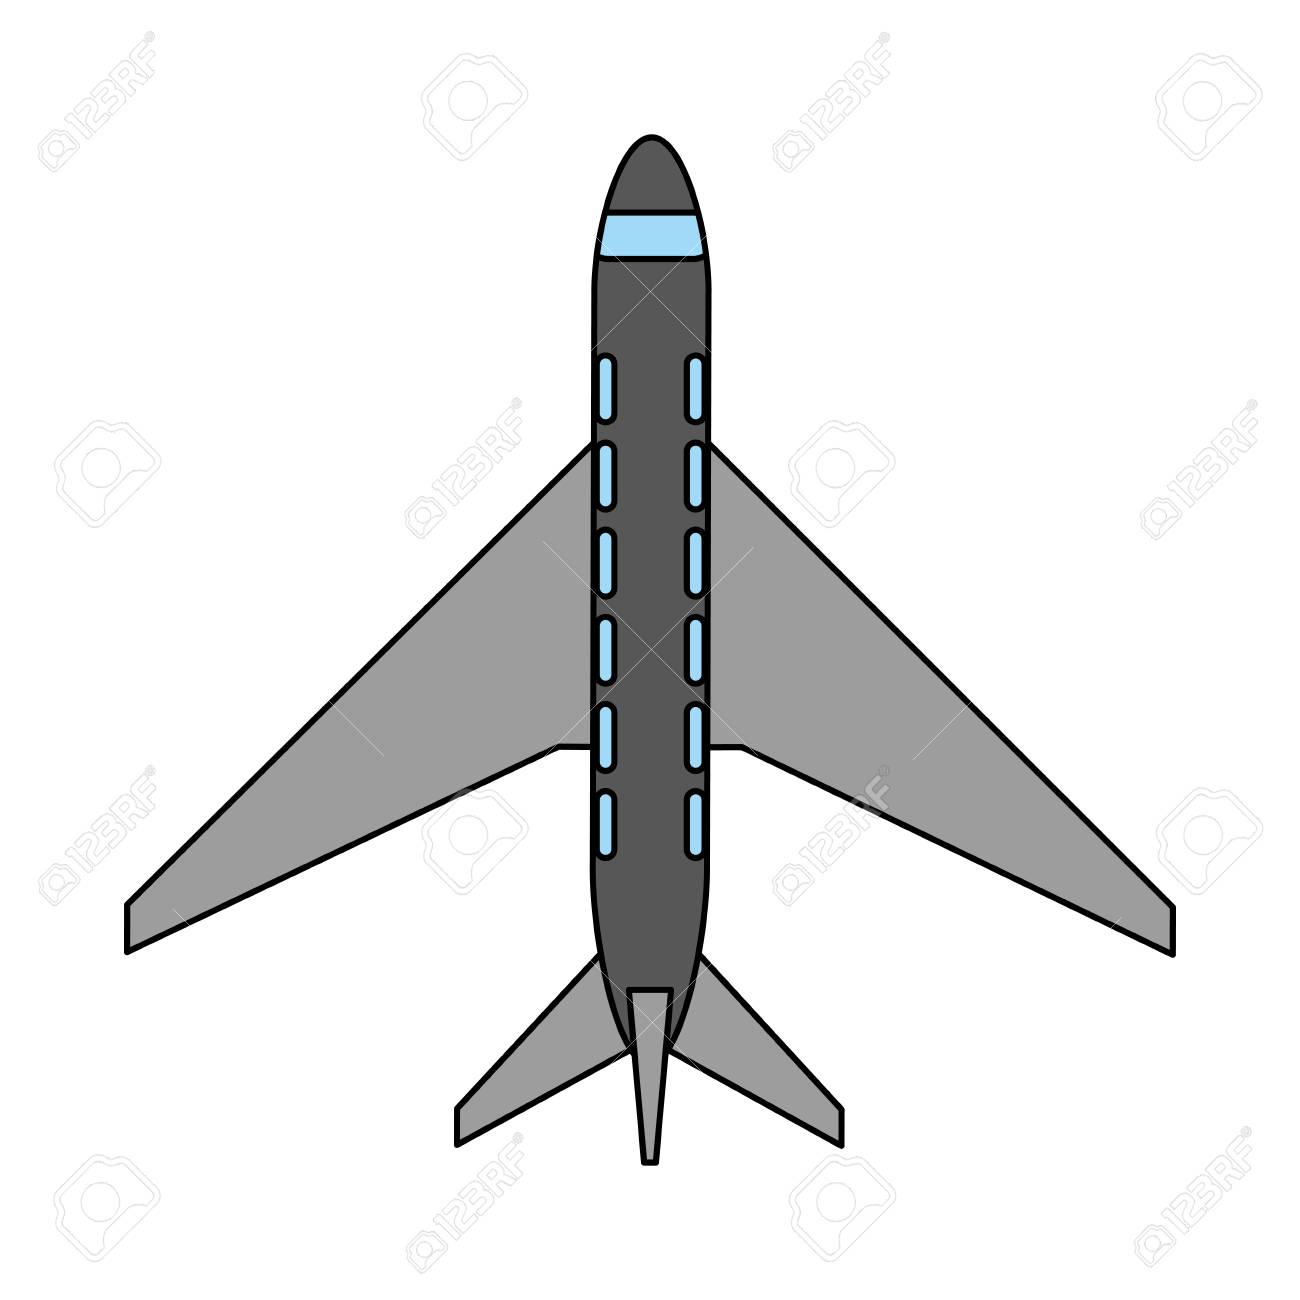 Color Image Cartoon Top View Travel Airplane Vector Illustration Stock